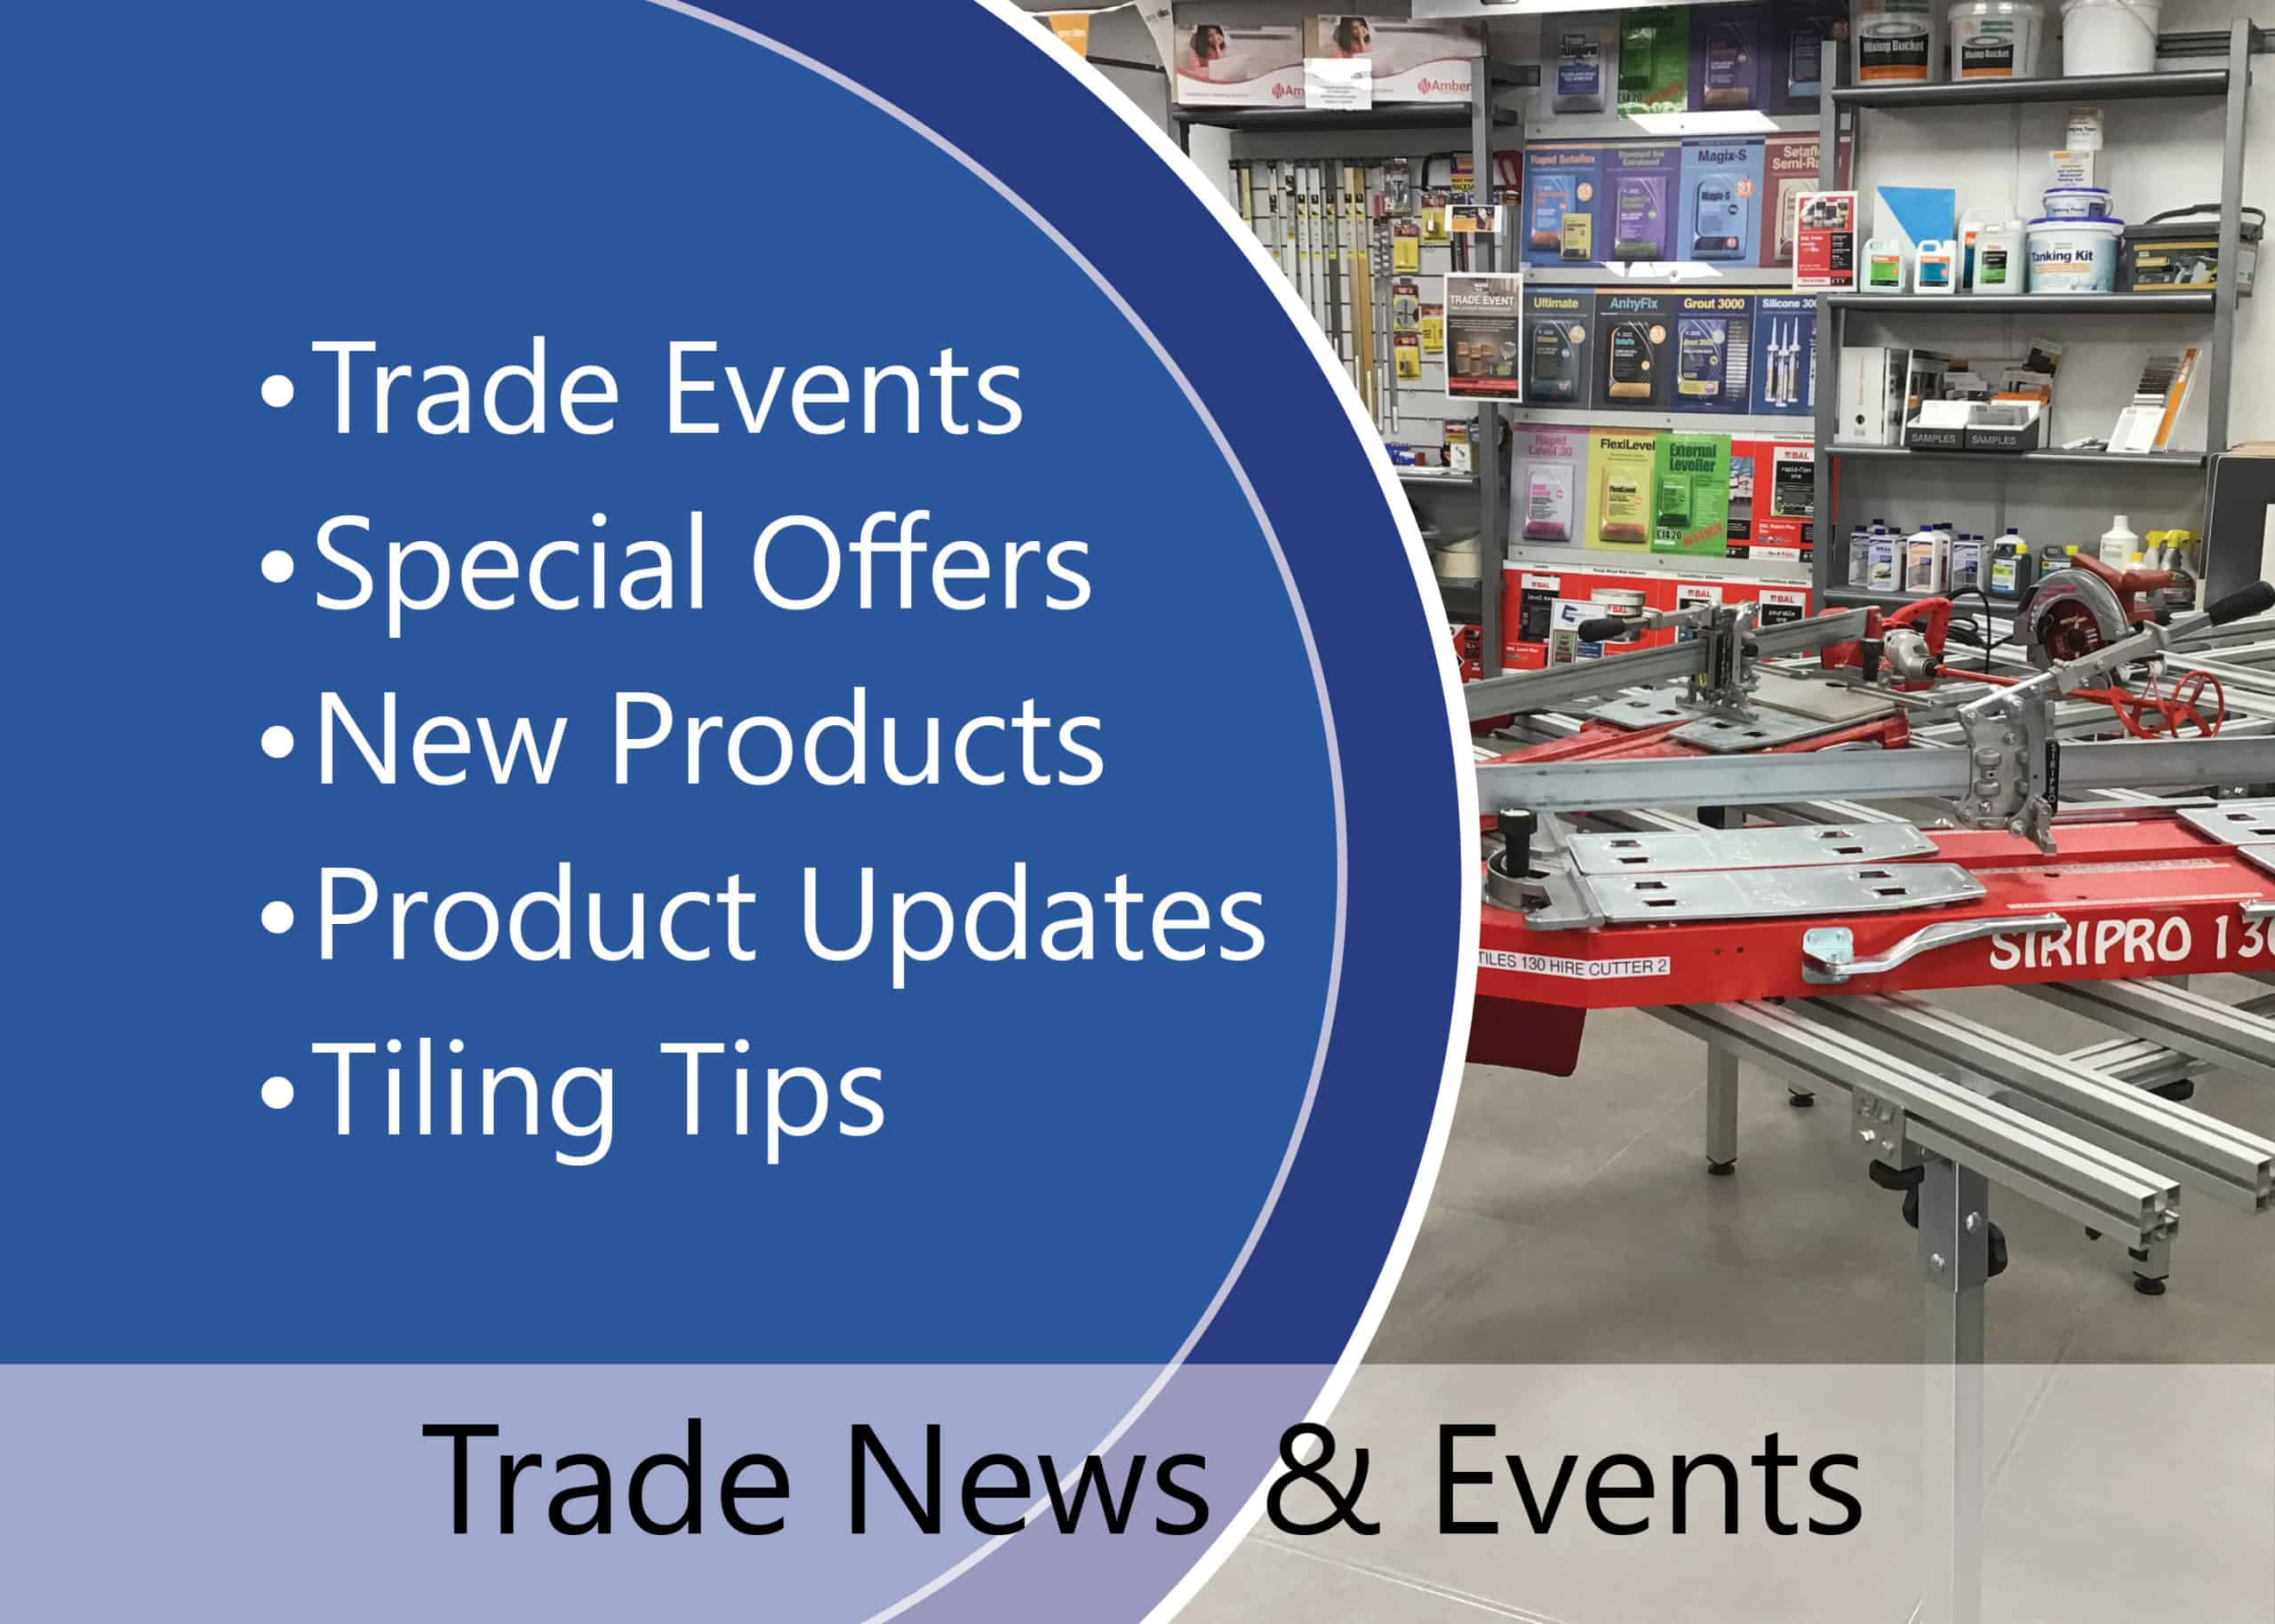 emc tiles trade account news, product updates tiling tips and events